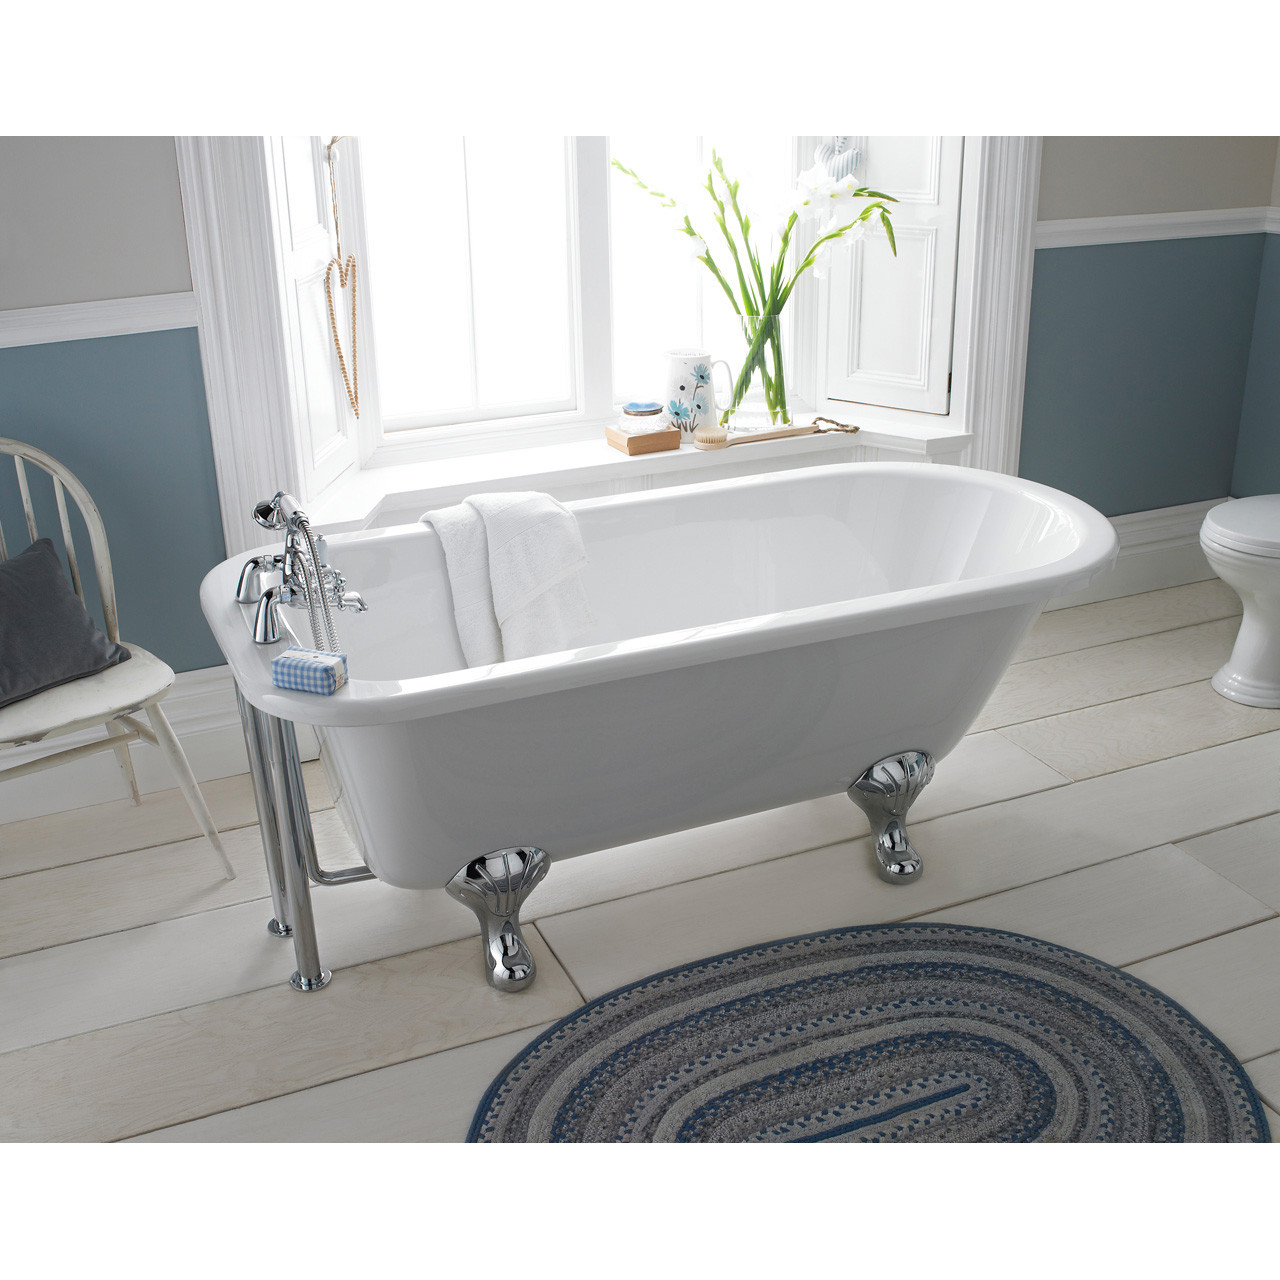 Nuie Barnsbury 1700mm Single Ended Freestanding Bath with Deacon Legs - RL1707M1